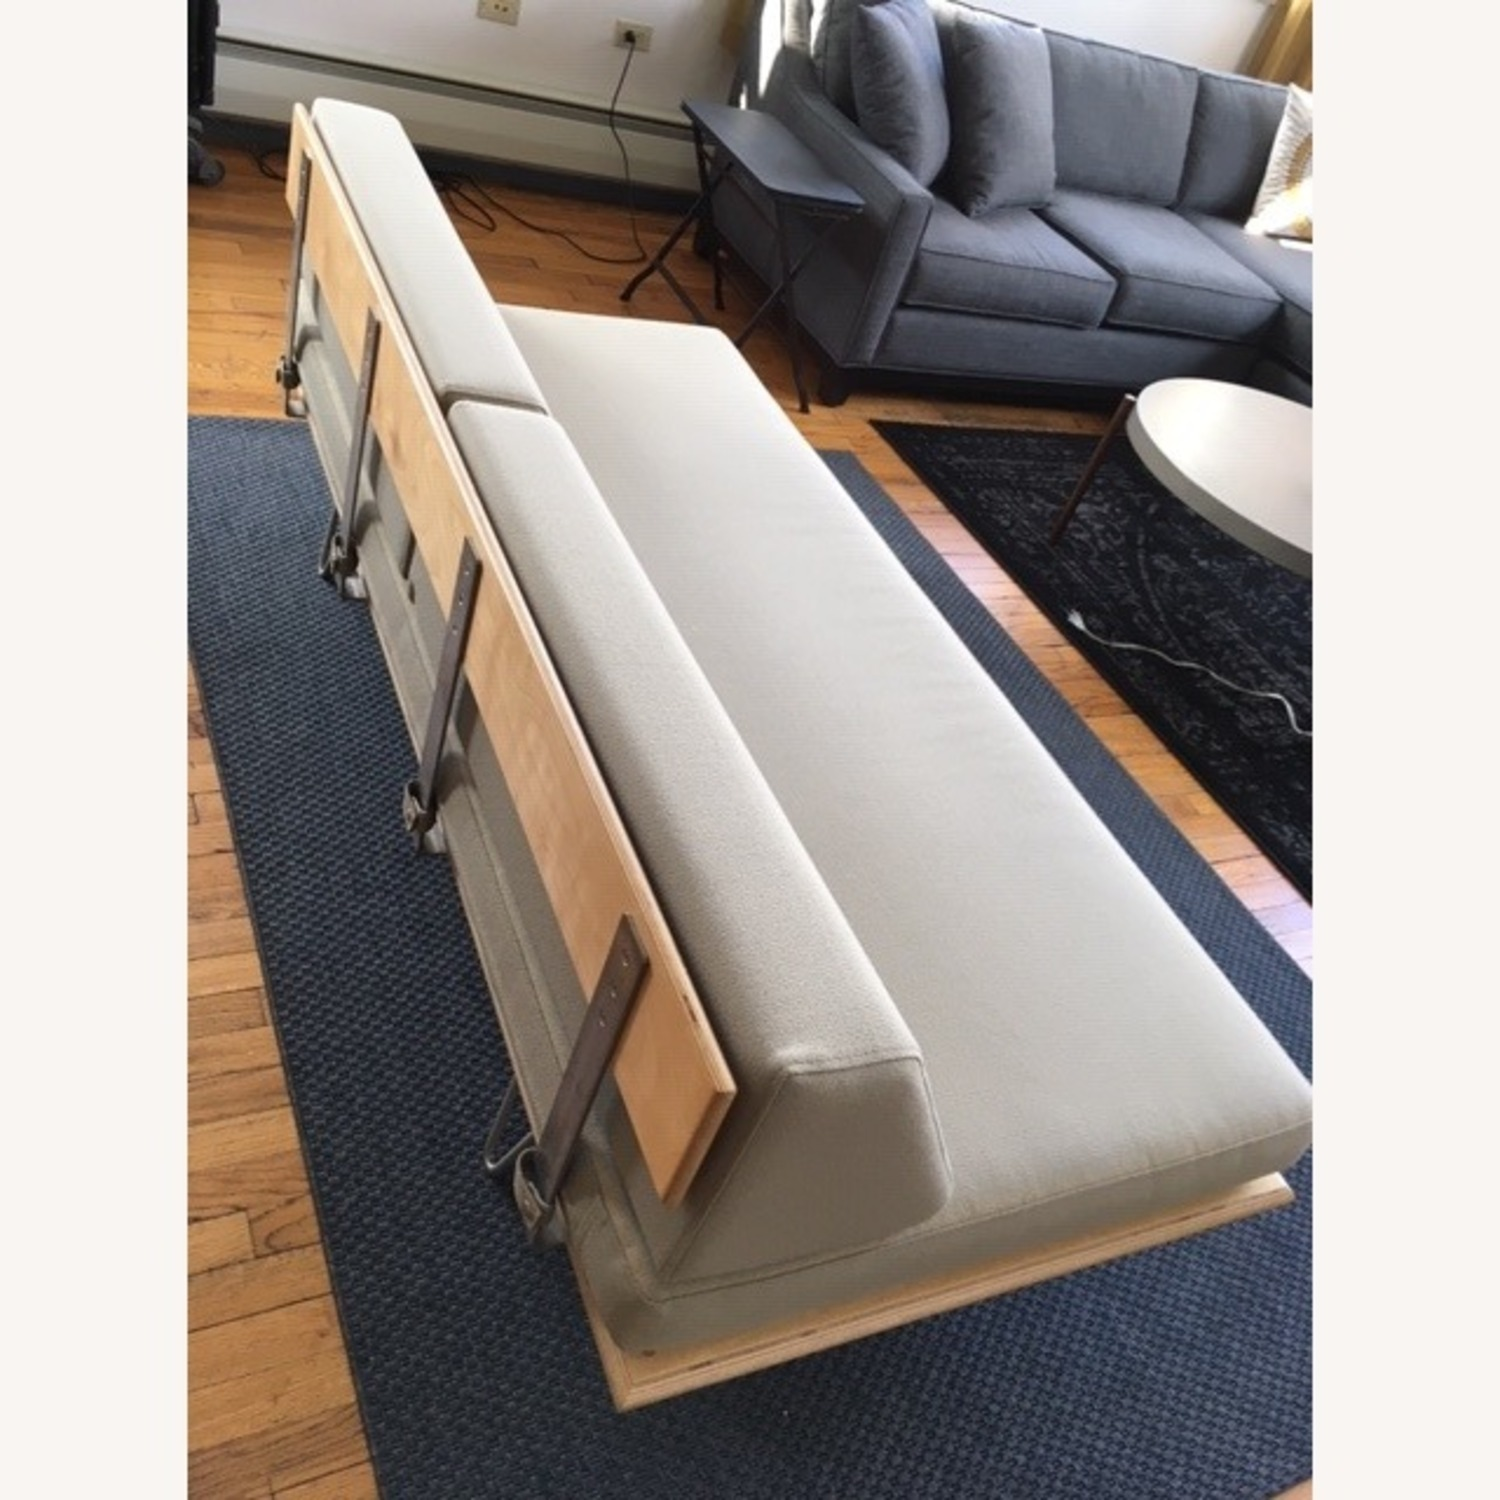 Herman Miller George Nelson Daybed - image-15